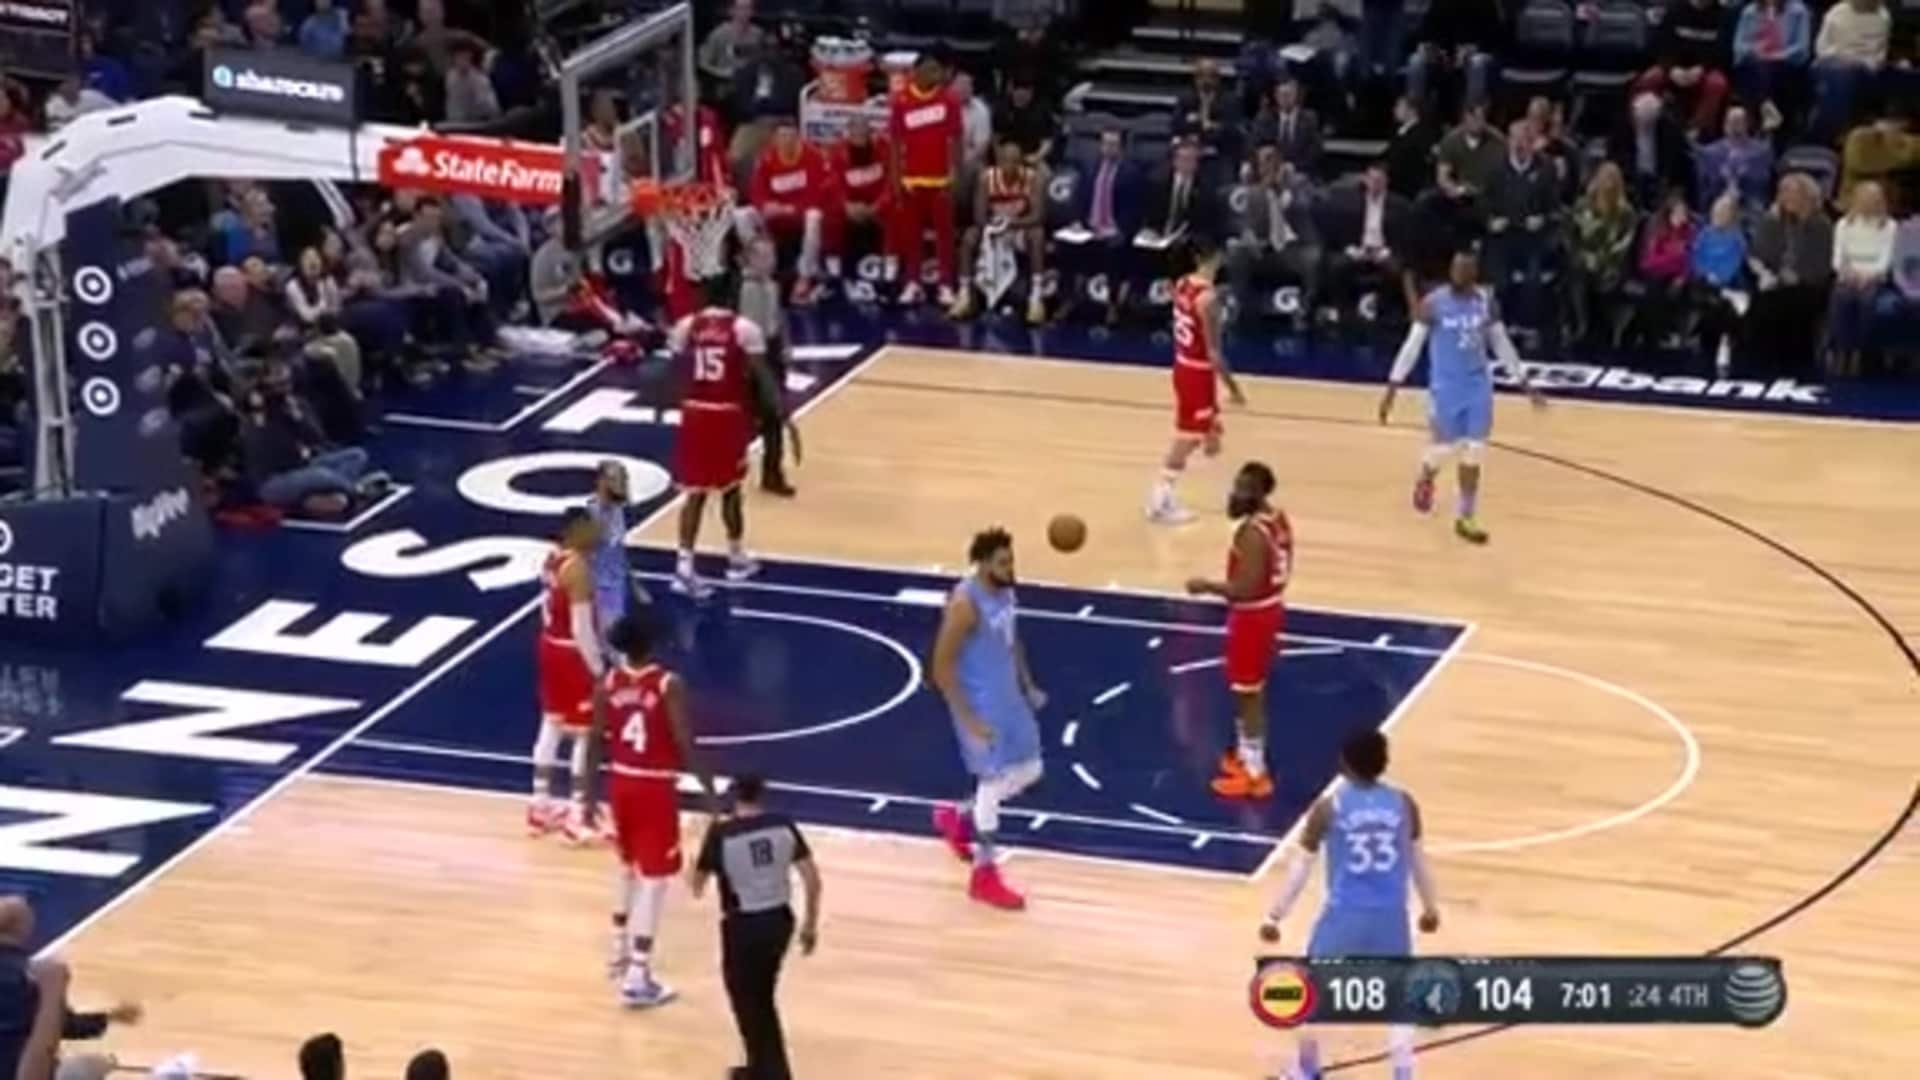 J-Mac Finds KAT For The Alley-Oop